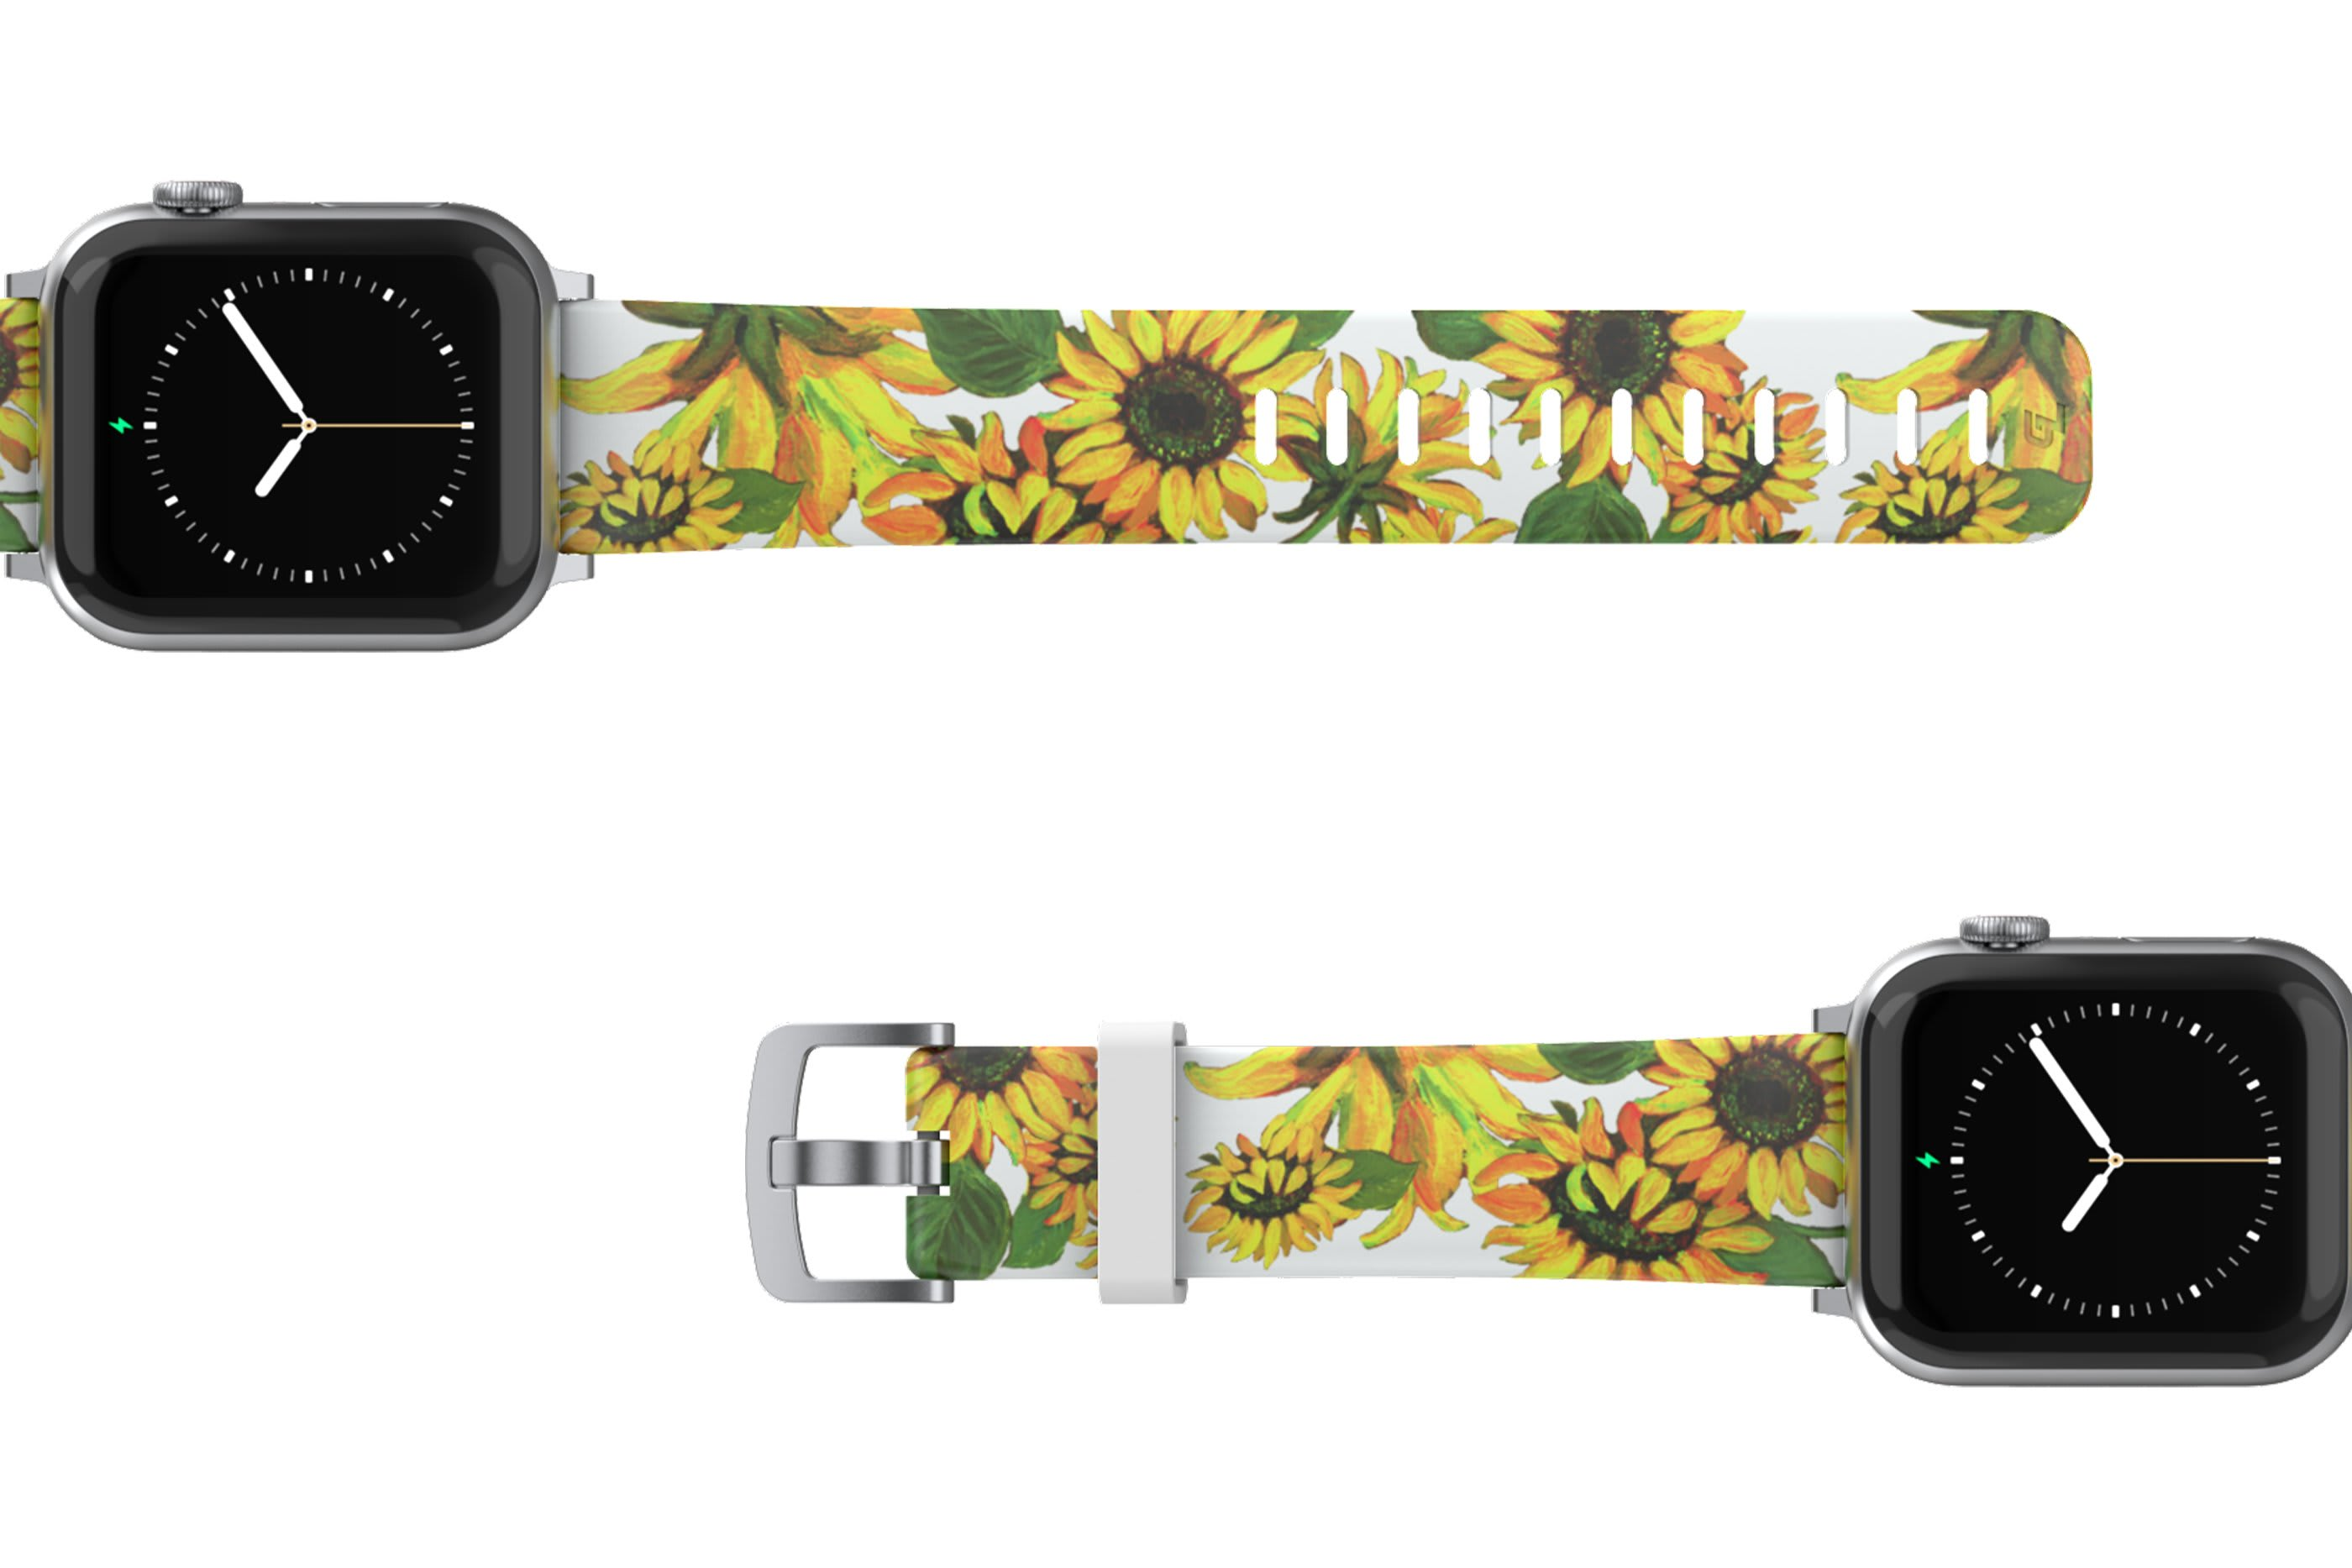 Sunflower Apple Watch Band with silver hardware viewed top down